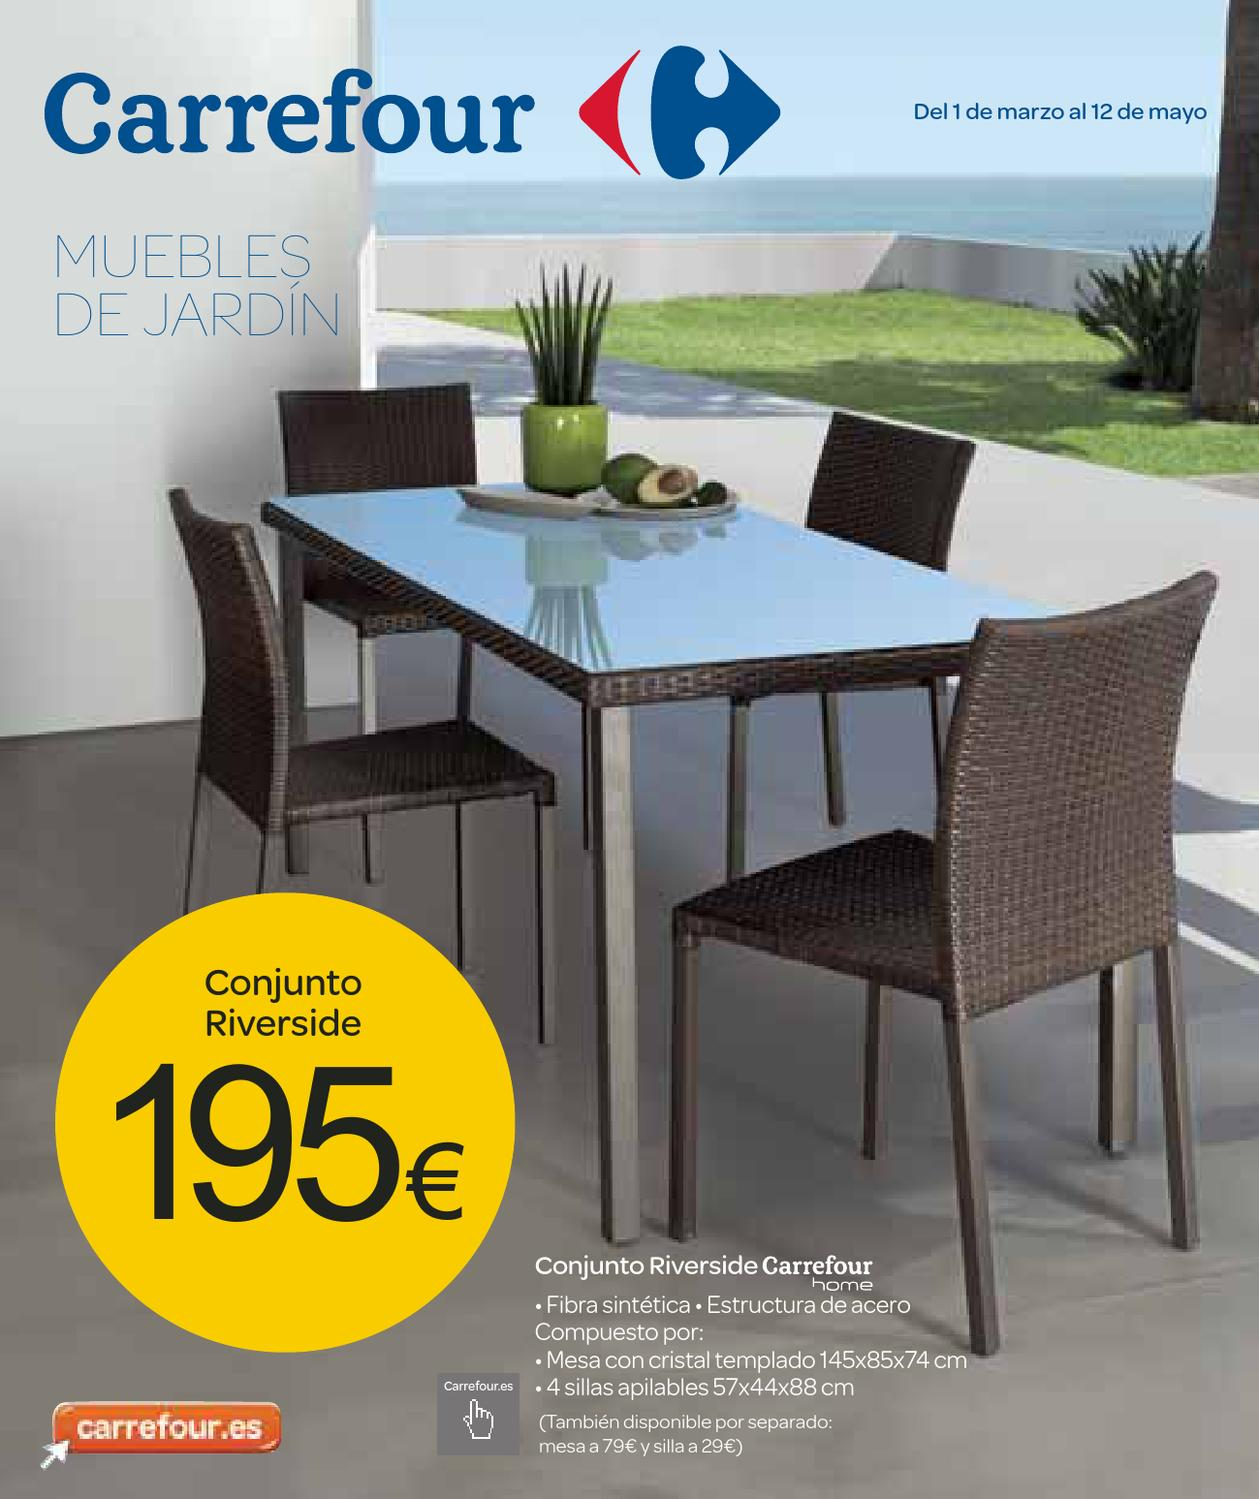 Issuu catalogo de muebles de jardin carrefour by for Muebles de jardin